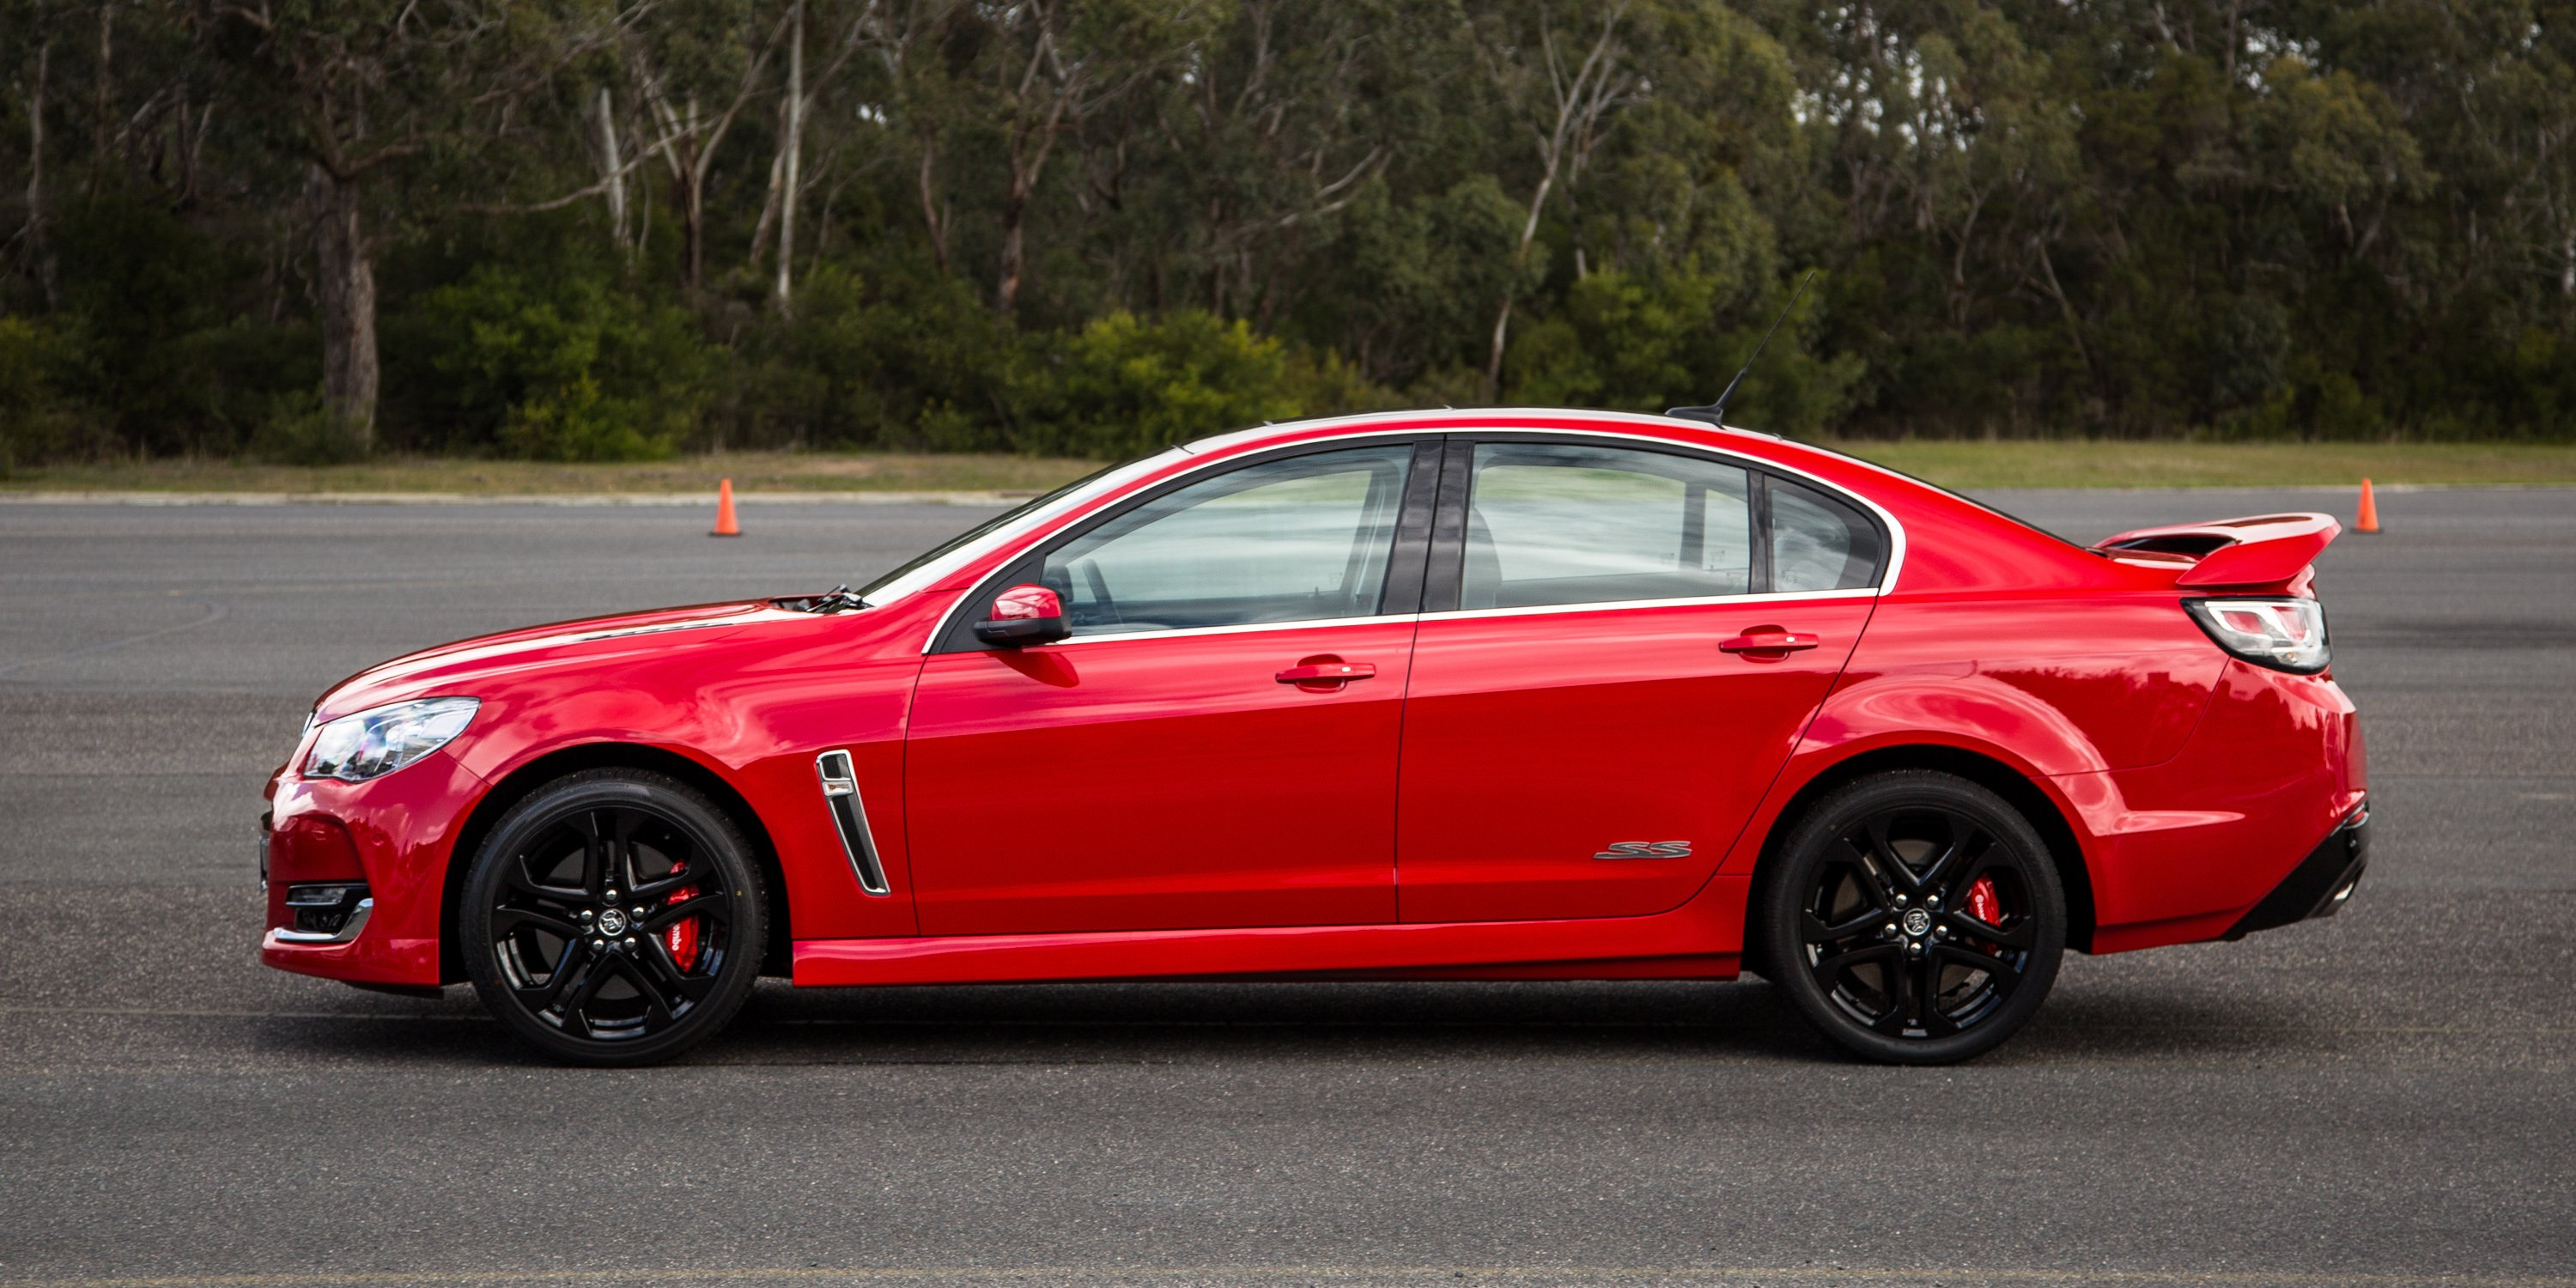 2016 Holden Commodore VFII review | CarAdvice